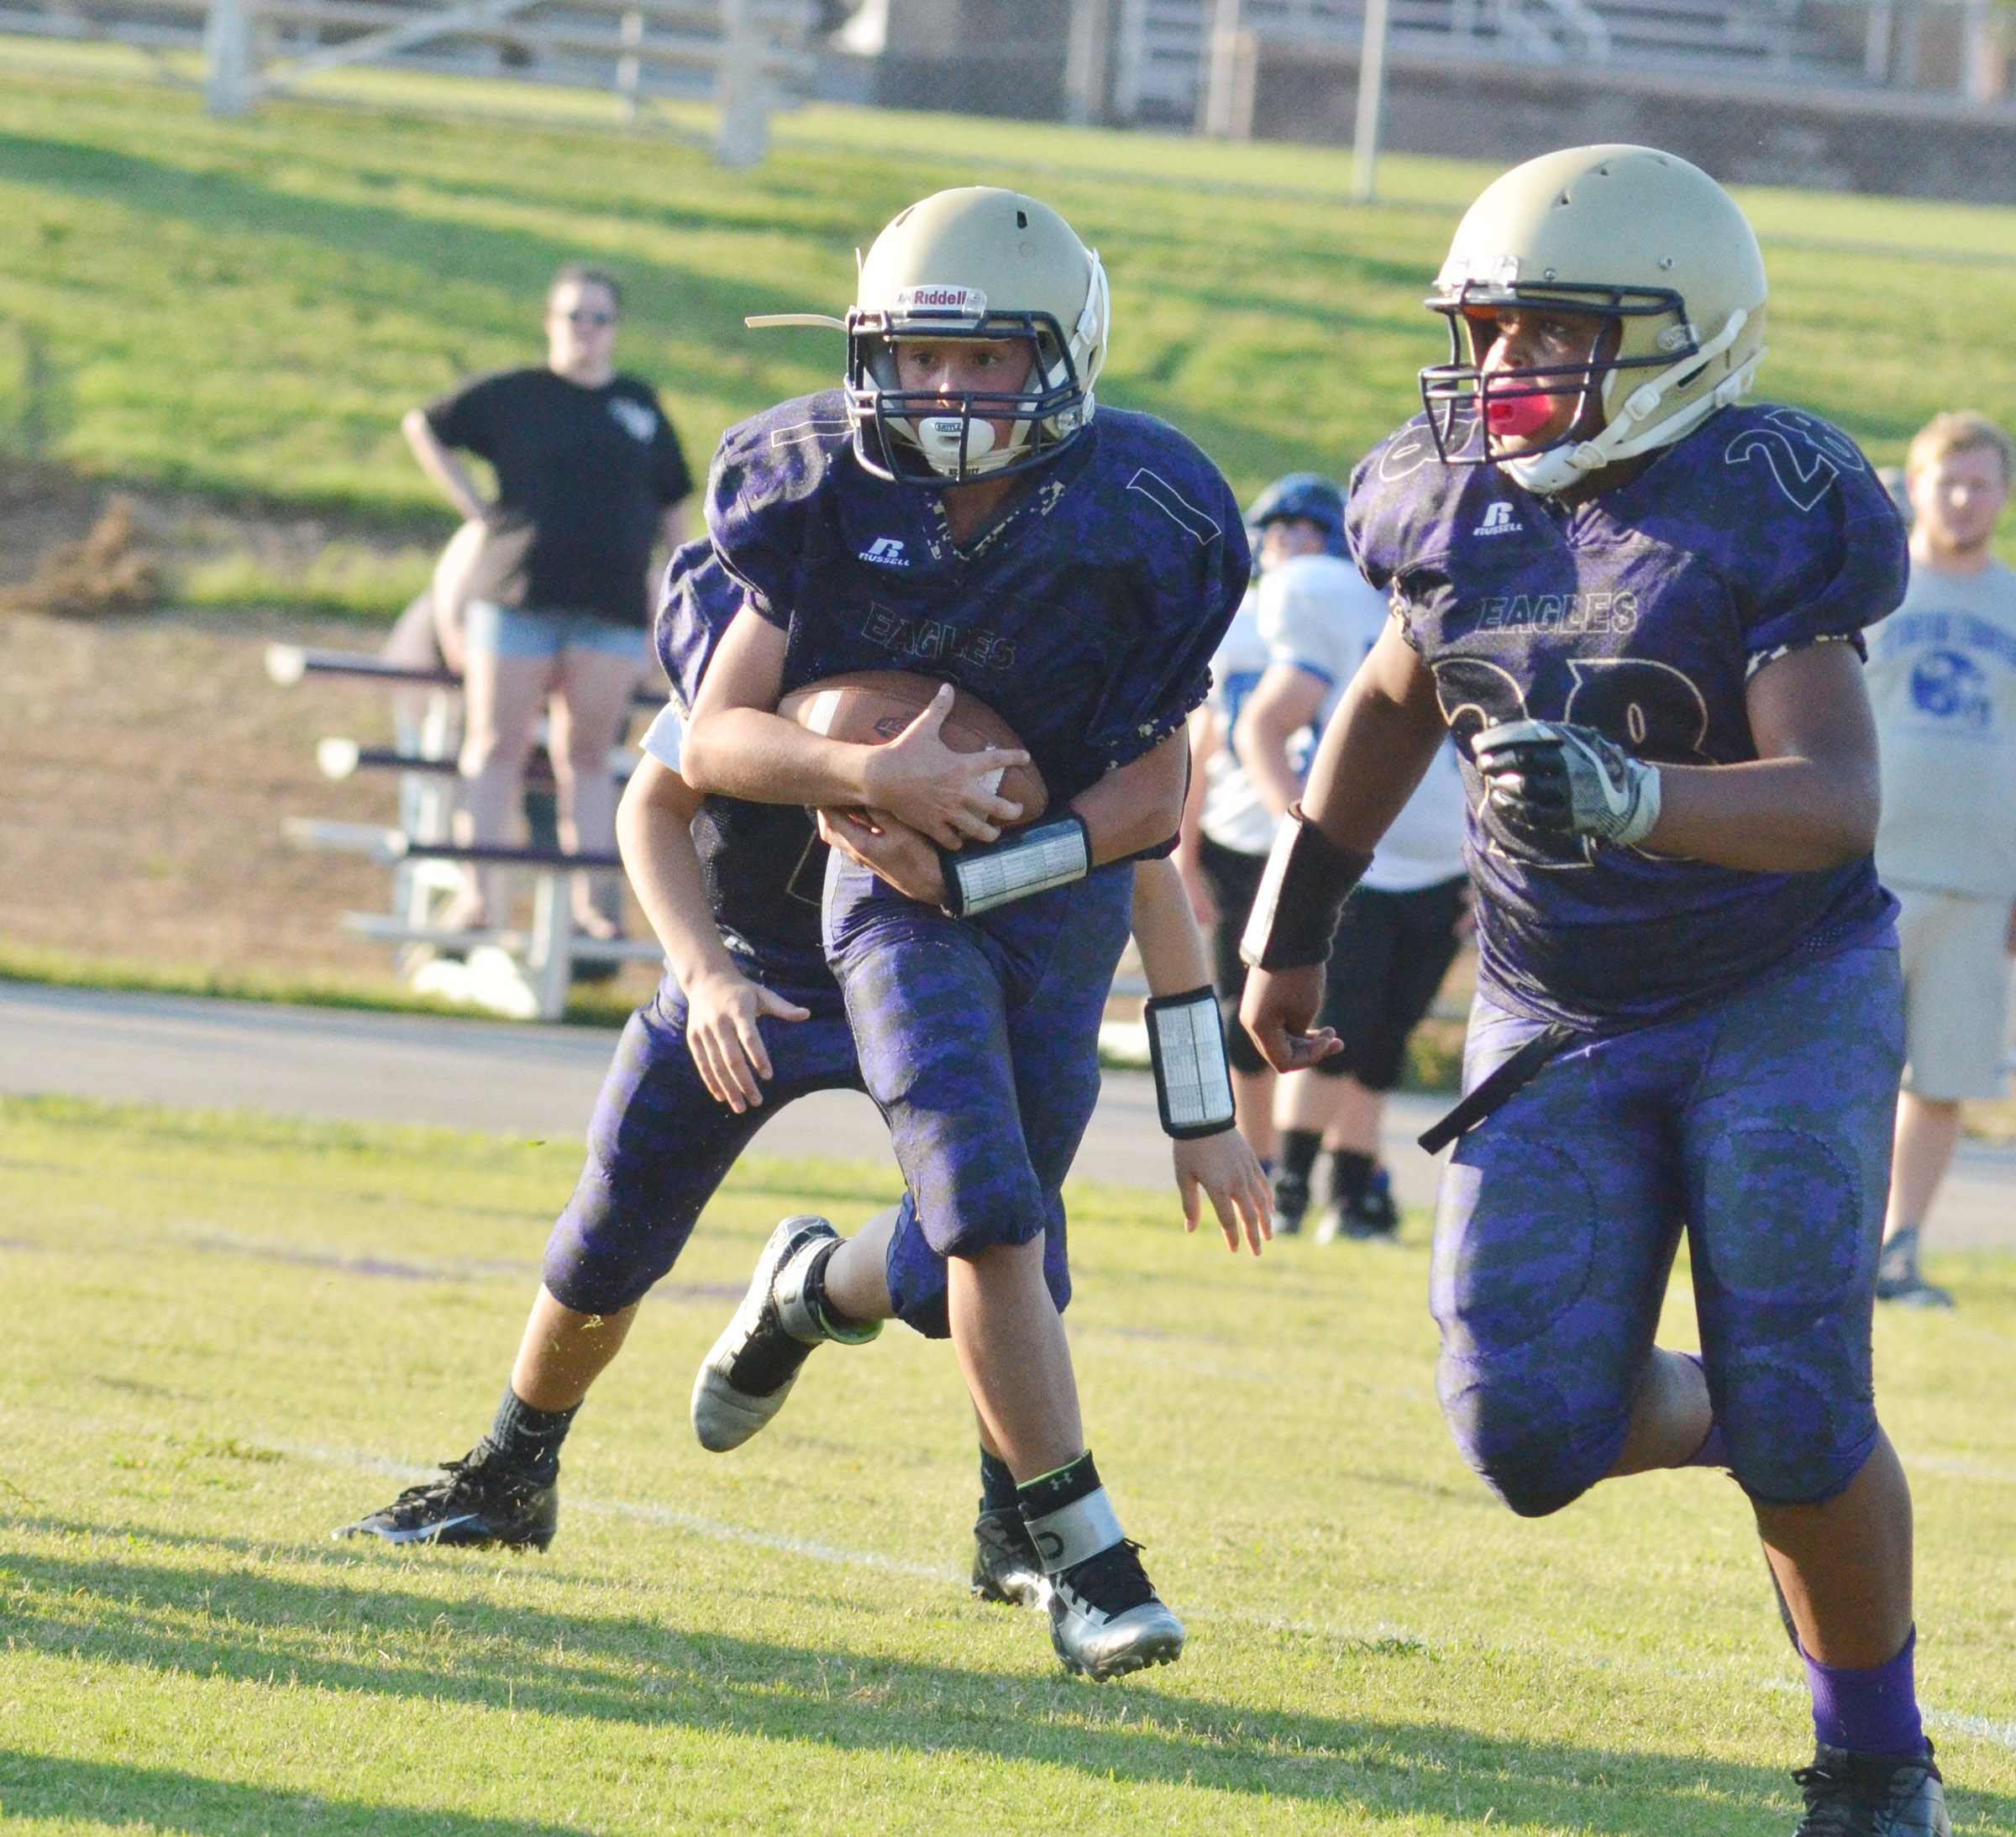 CMS eighth-grader Dakota Harris runs the ball as seventh-grader Keondre Weathers blocks.